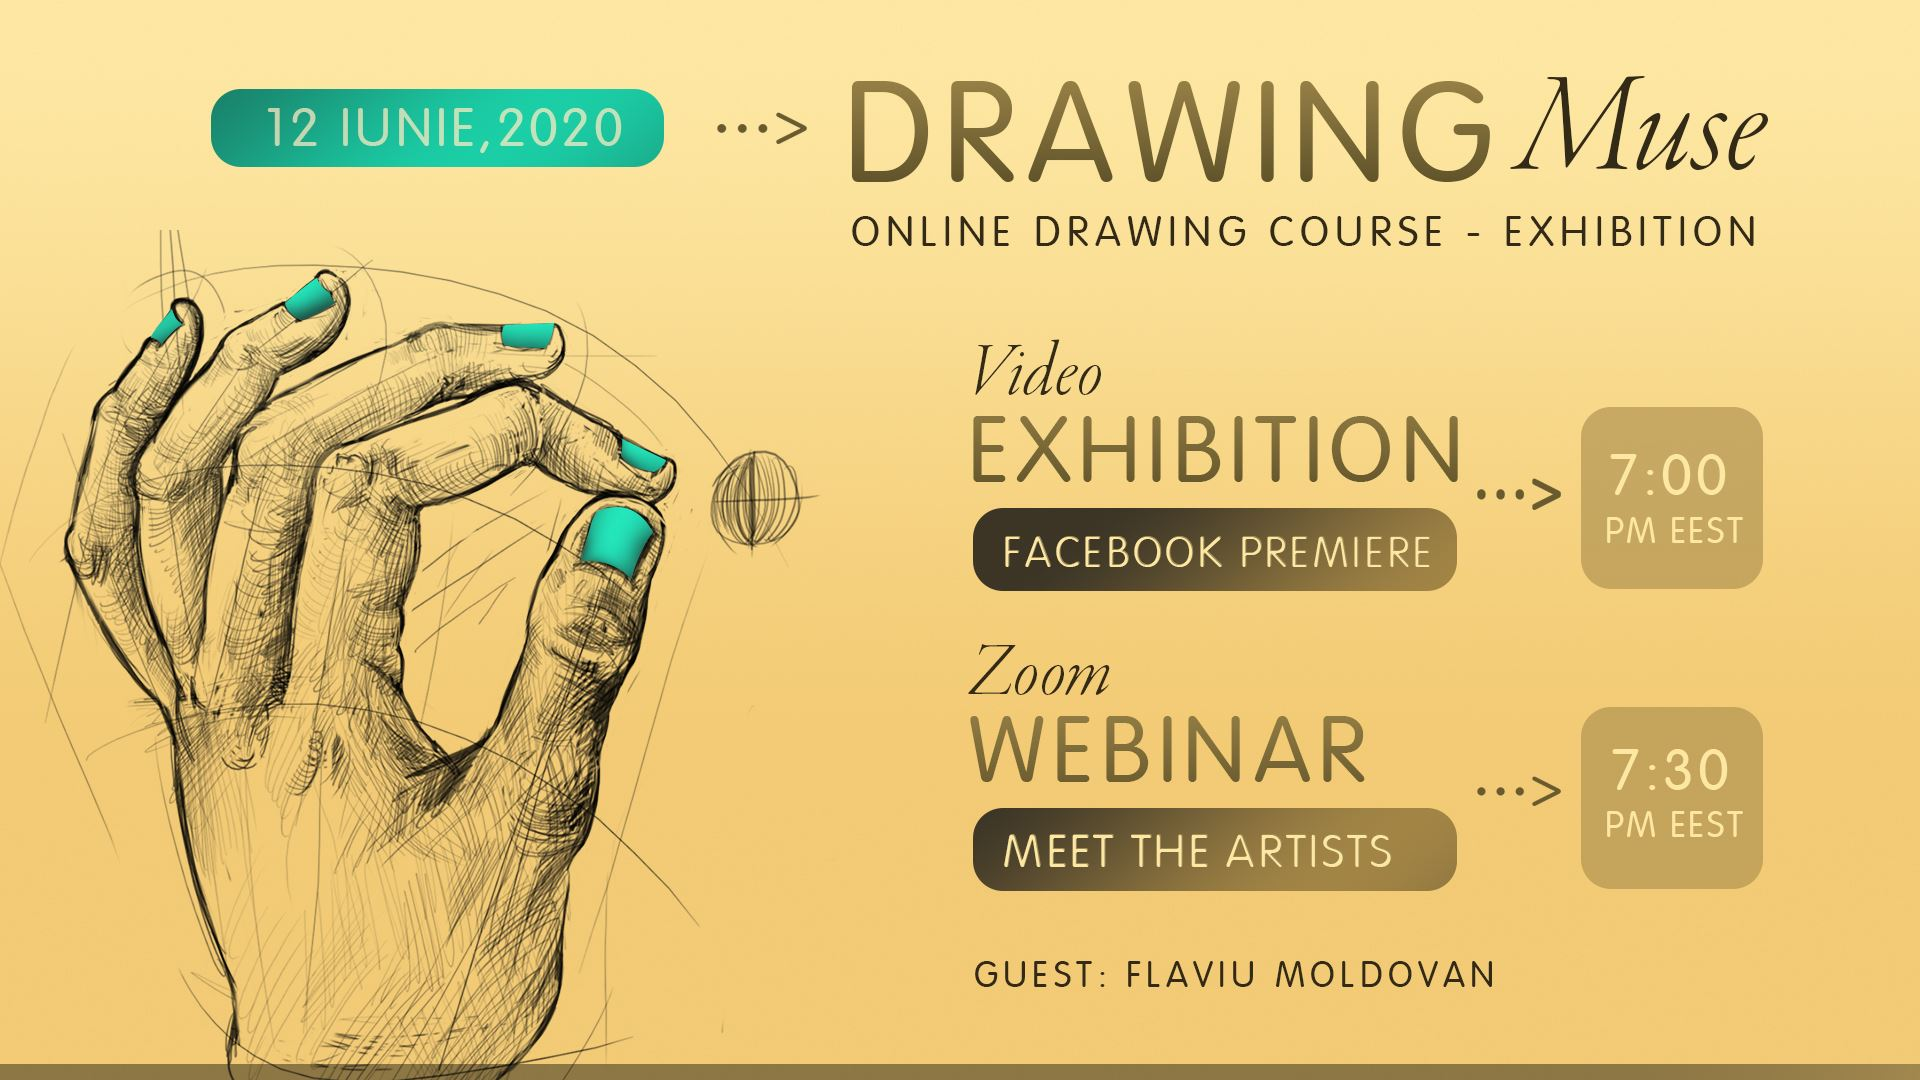 Drawing Muse Online Exhibition